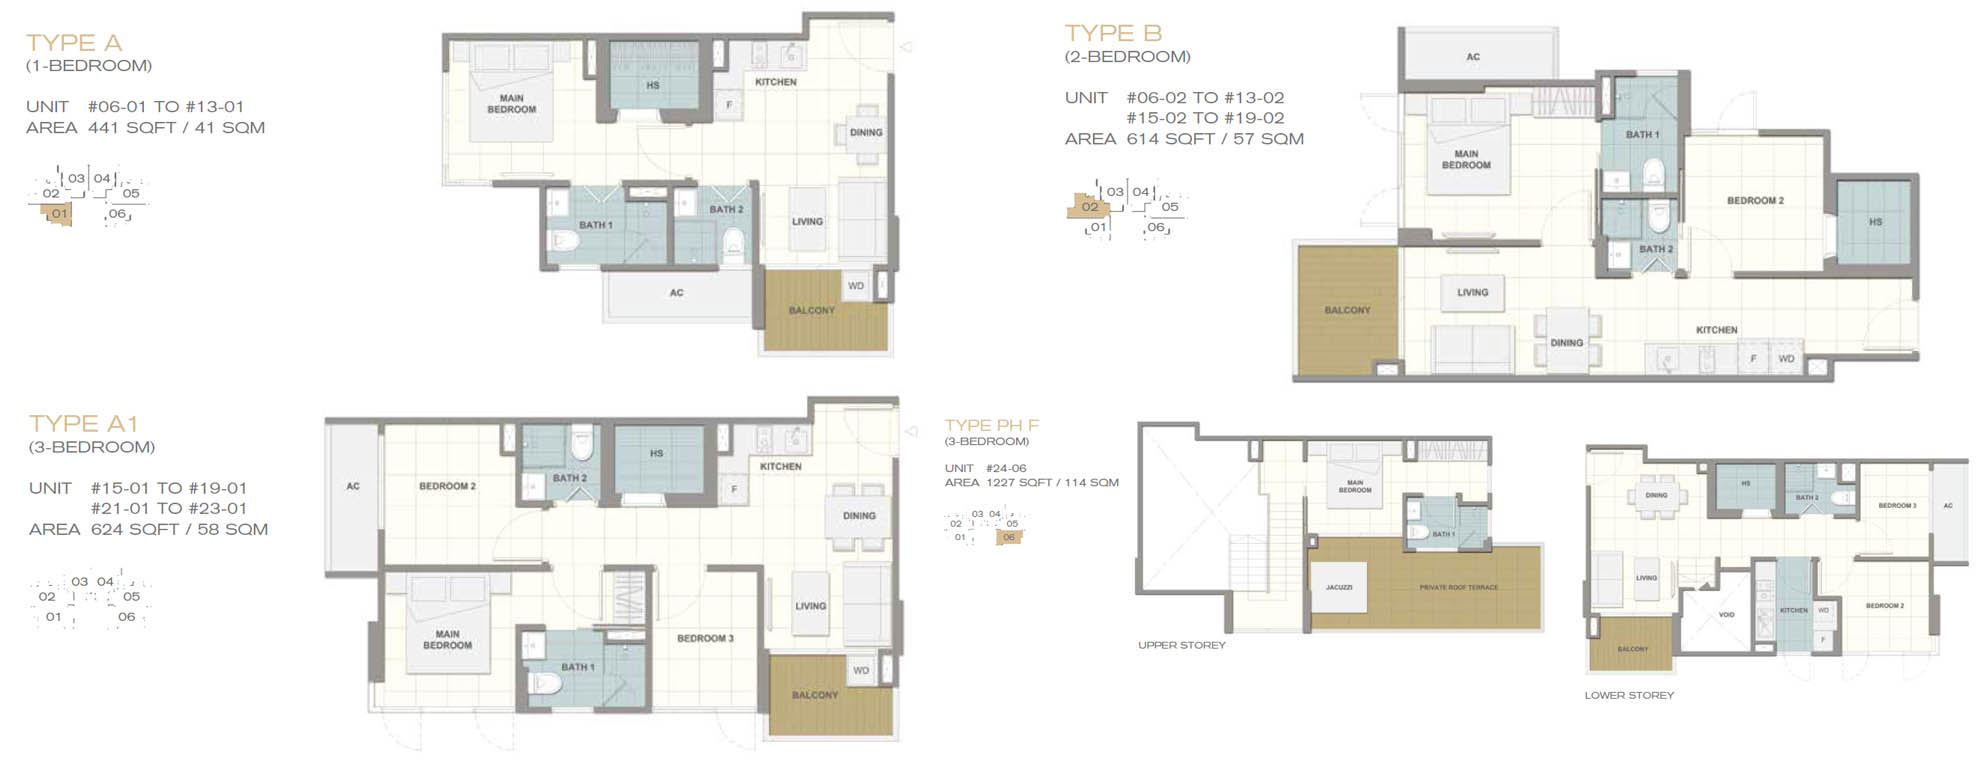 Forte-Suites-floor-plan